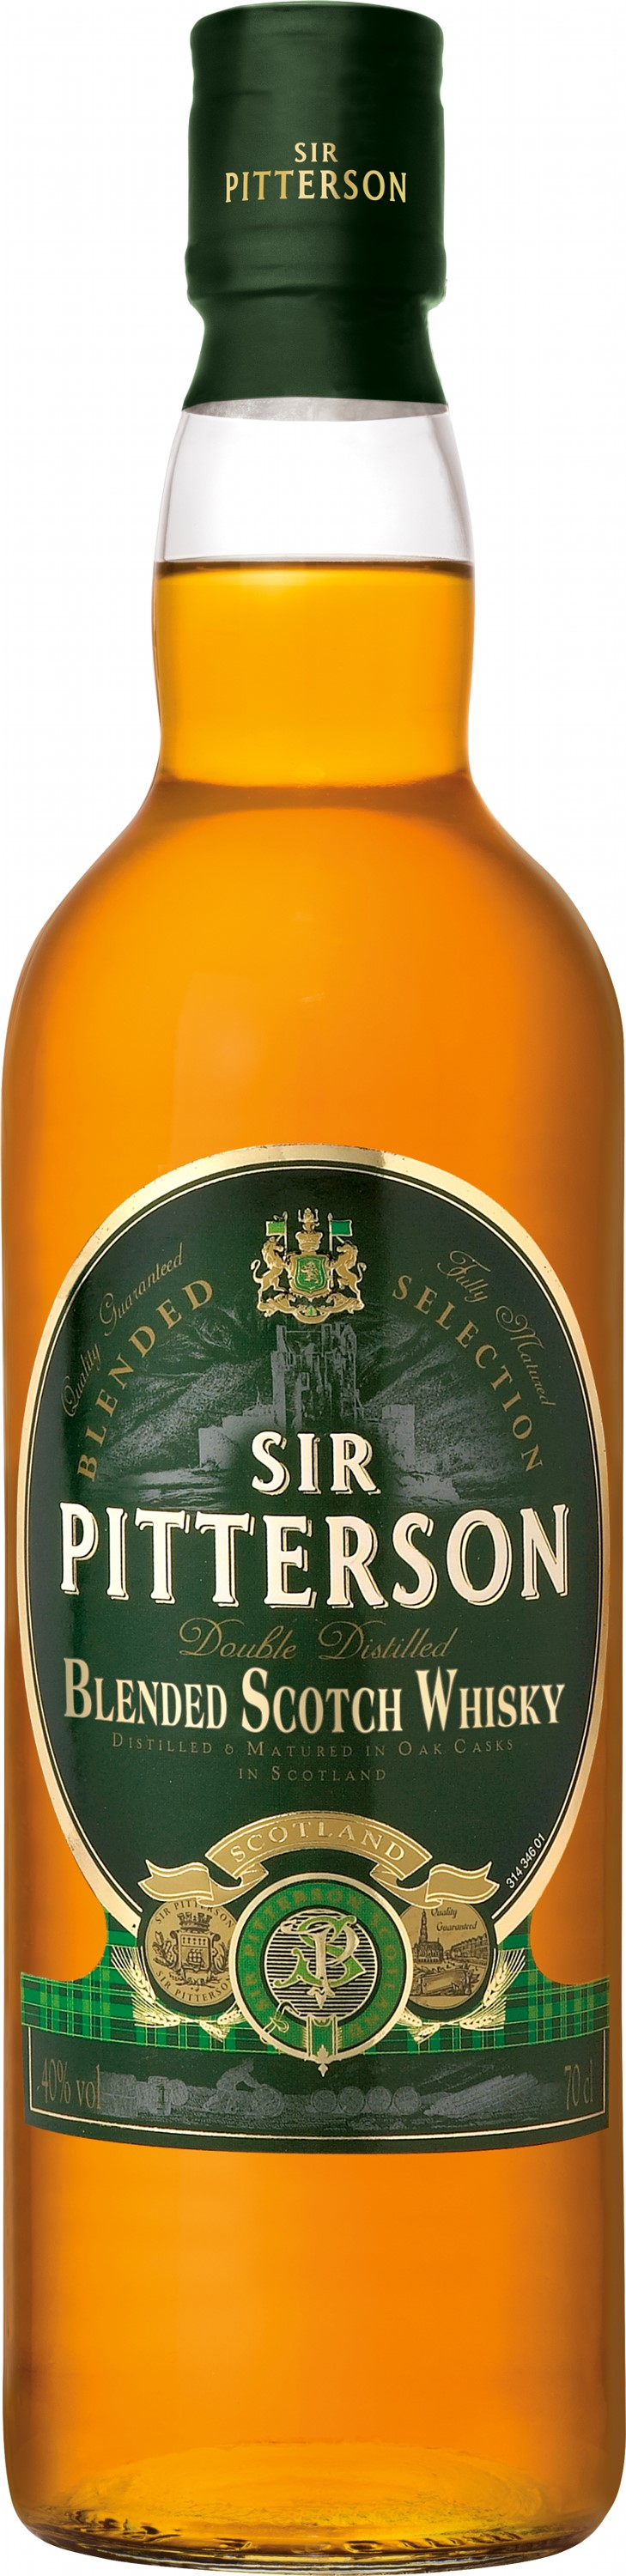 Виски Sir Pitterson Premium Blended Scotch Whisky 0.7 л 40% (3107872005342)